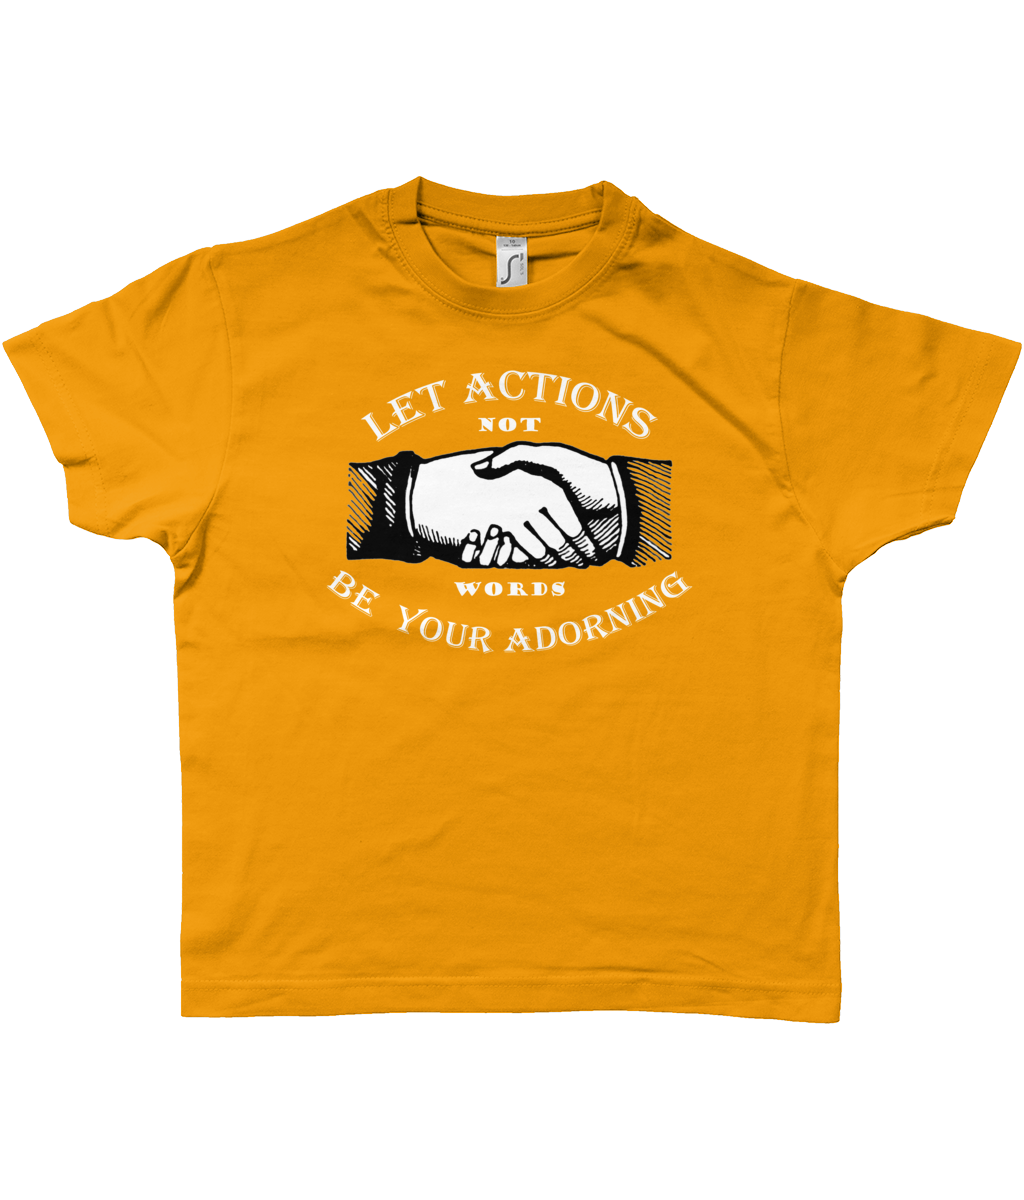 Bojest retro kid's t-shirt 'Let Actions Be Your Adorning' on gold